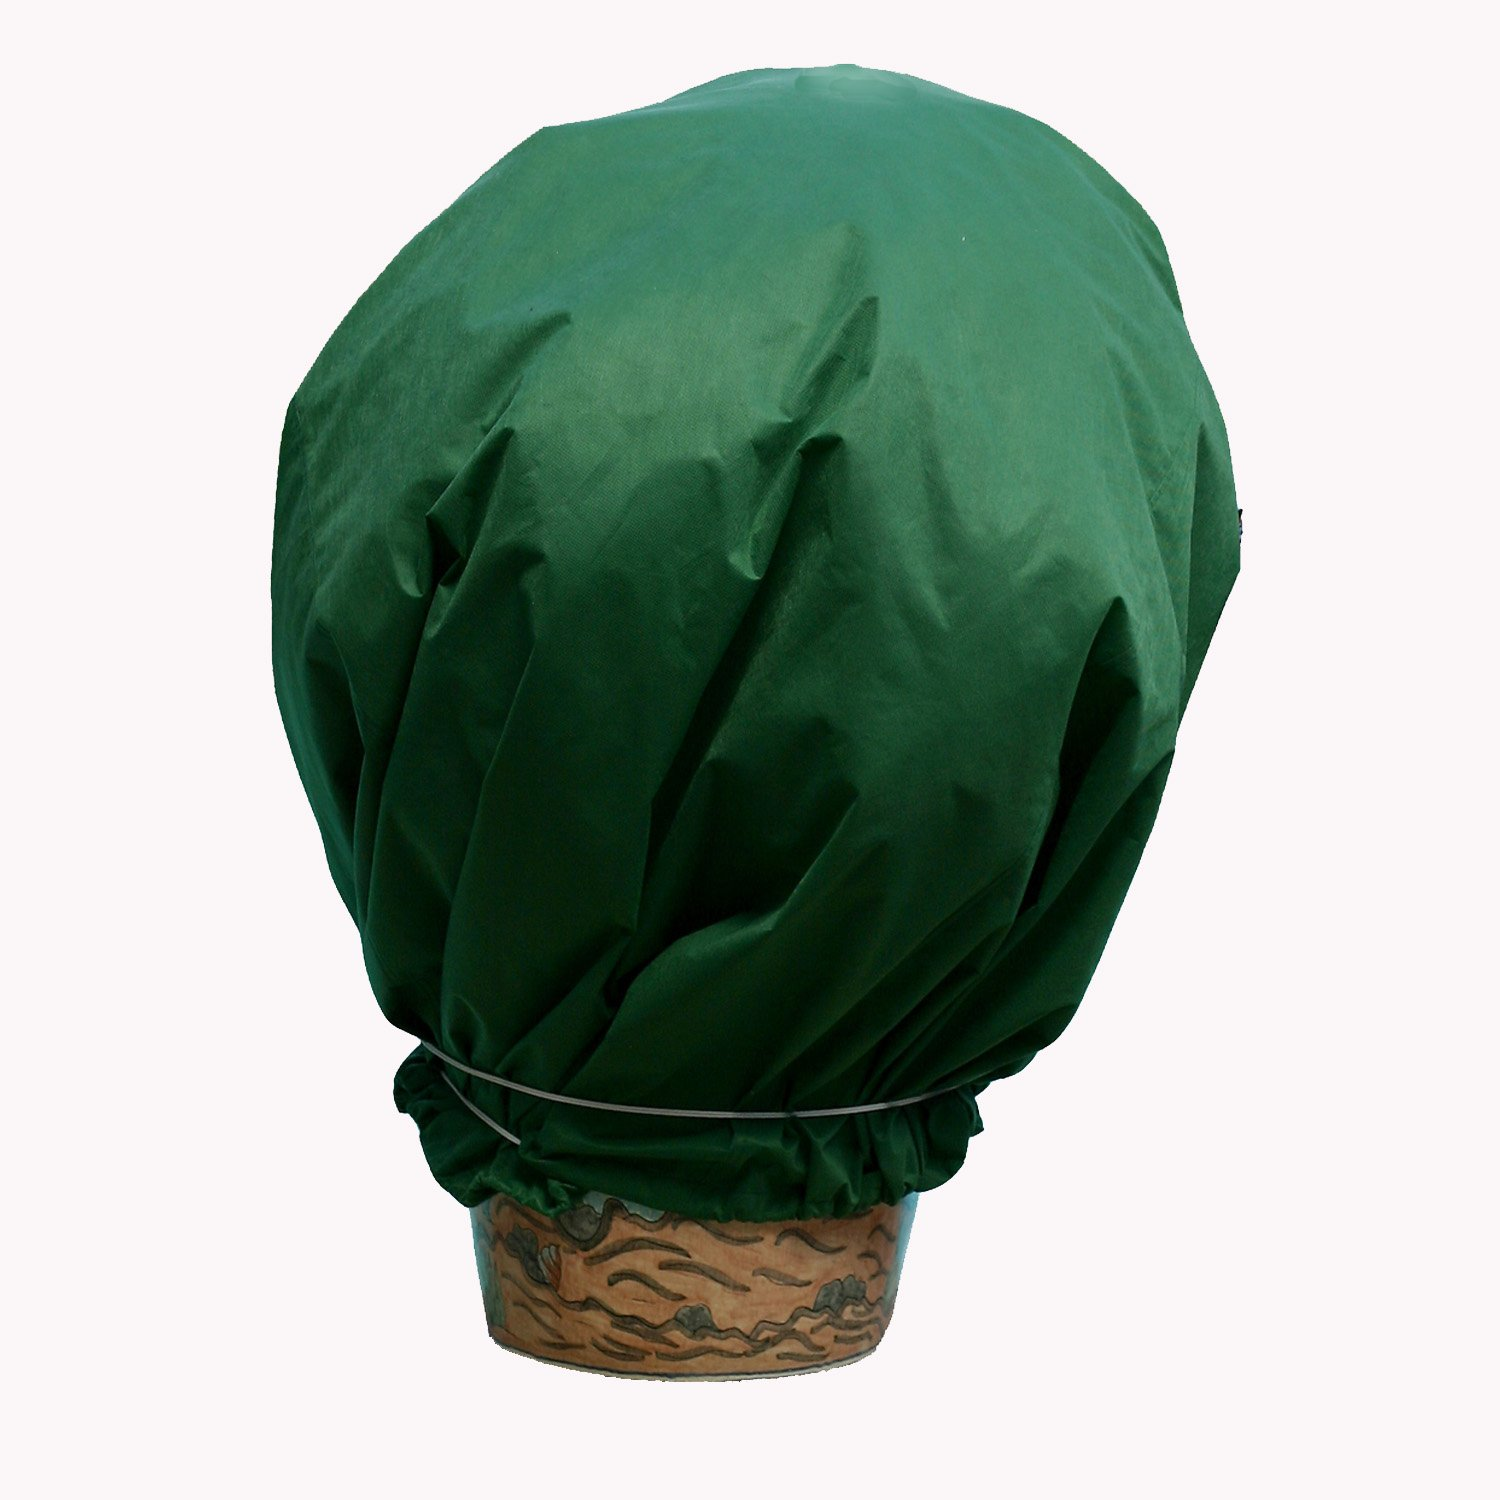 Planket Landscape 8 foot Round Frost Protector 10096 at Sears.com